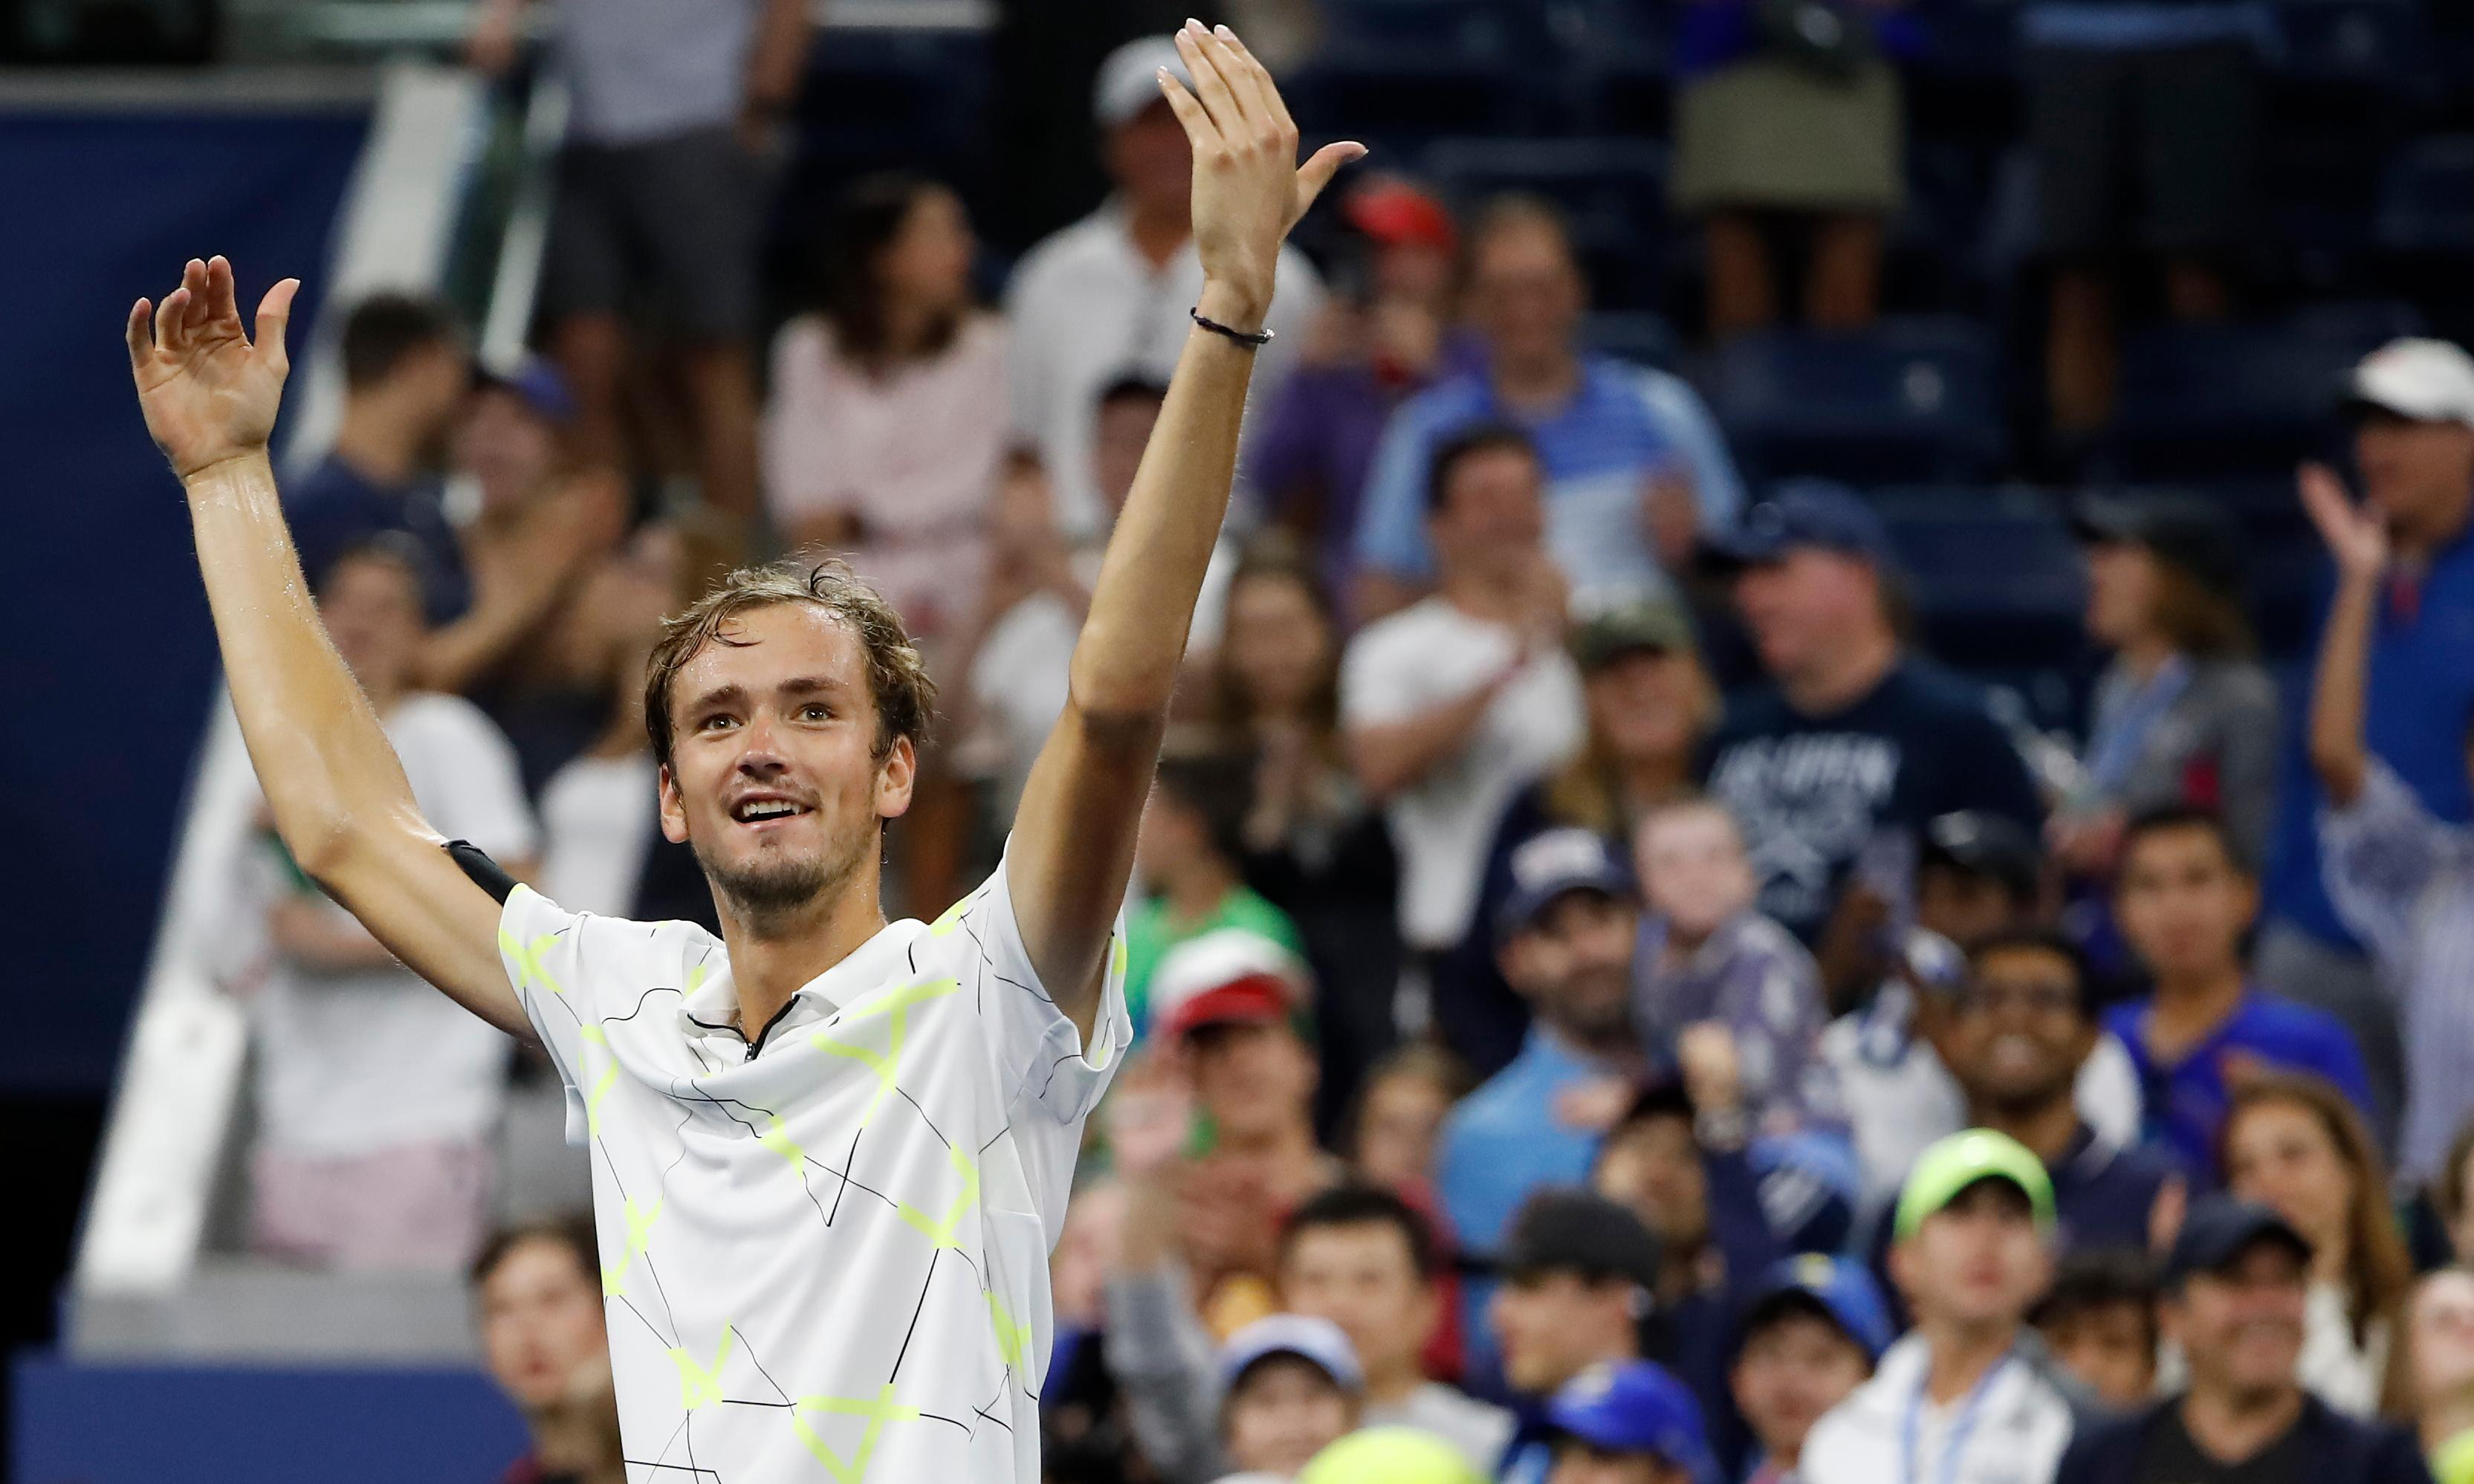 US Open is the dignity-swerving slam where tennis bad boys thrive